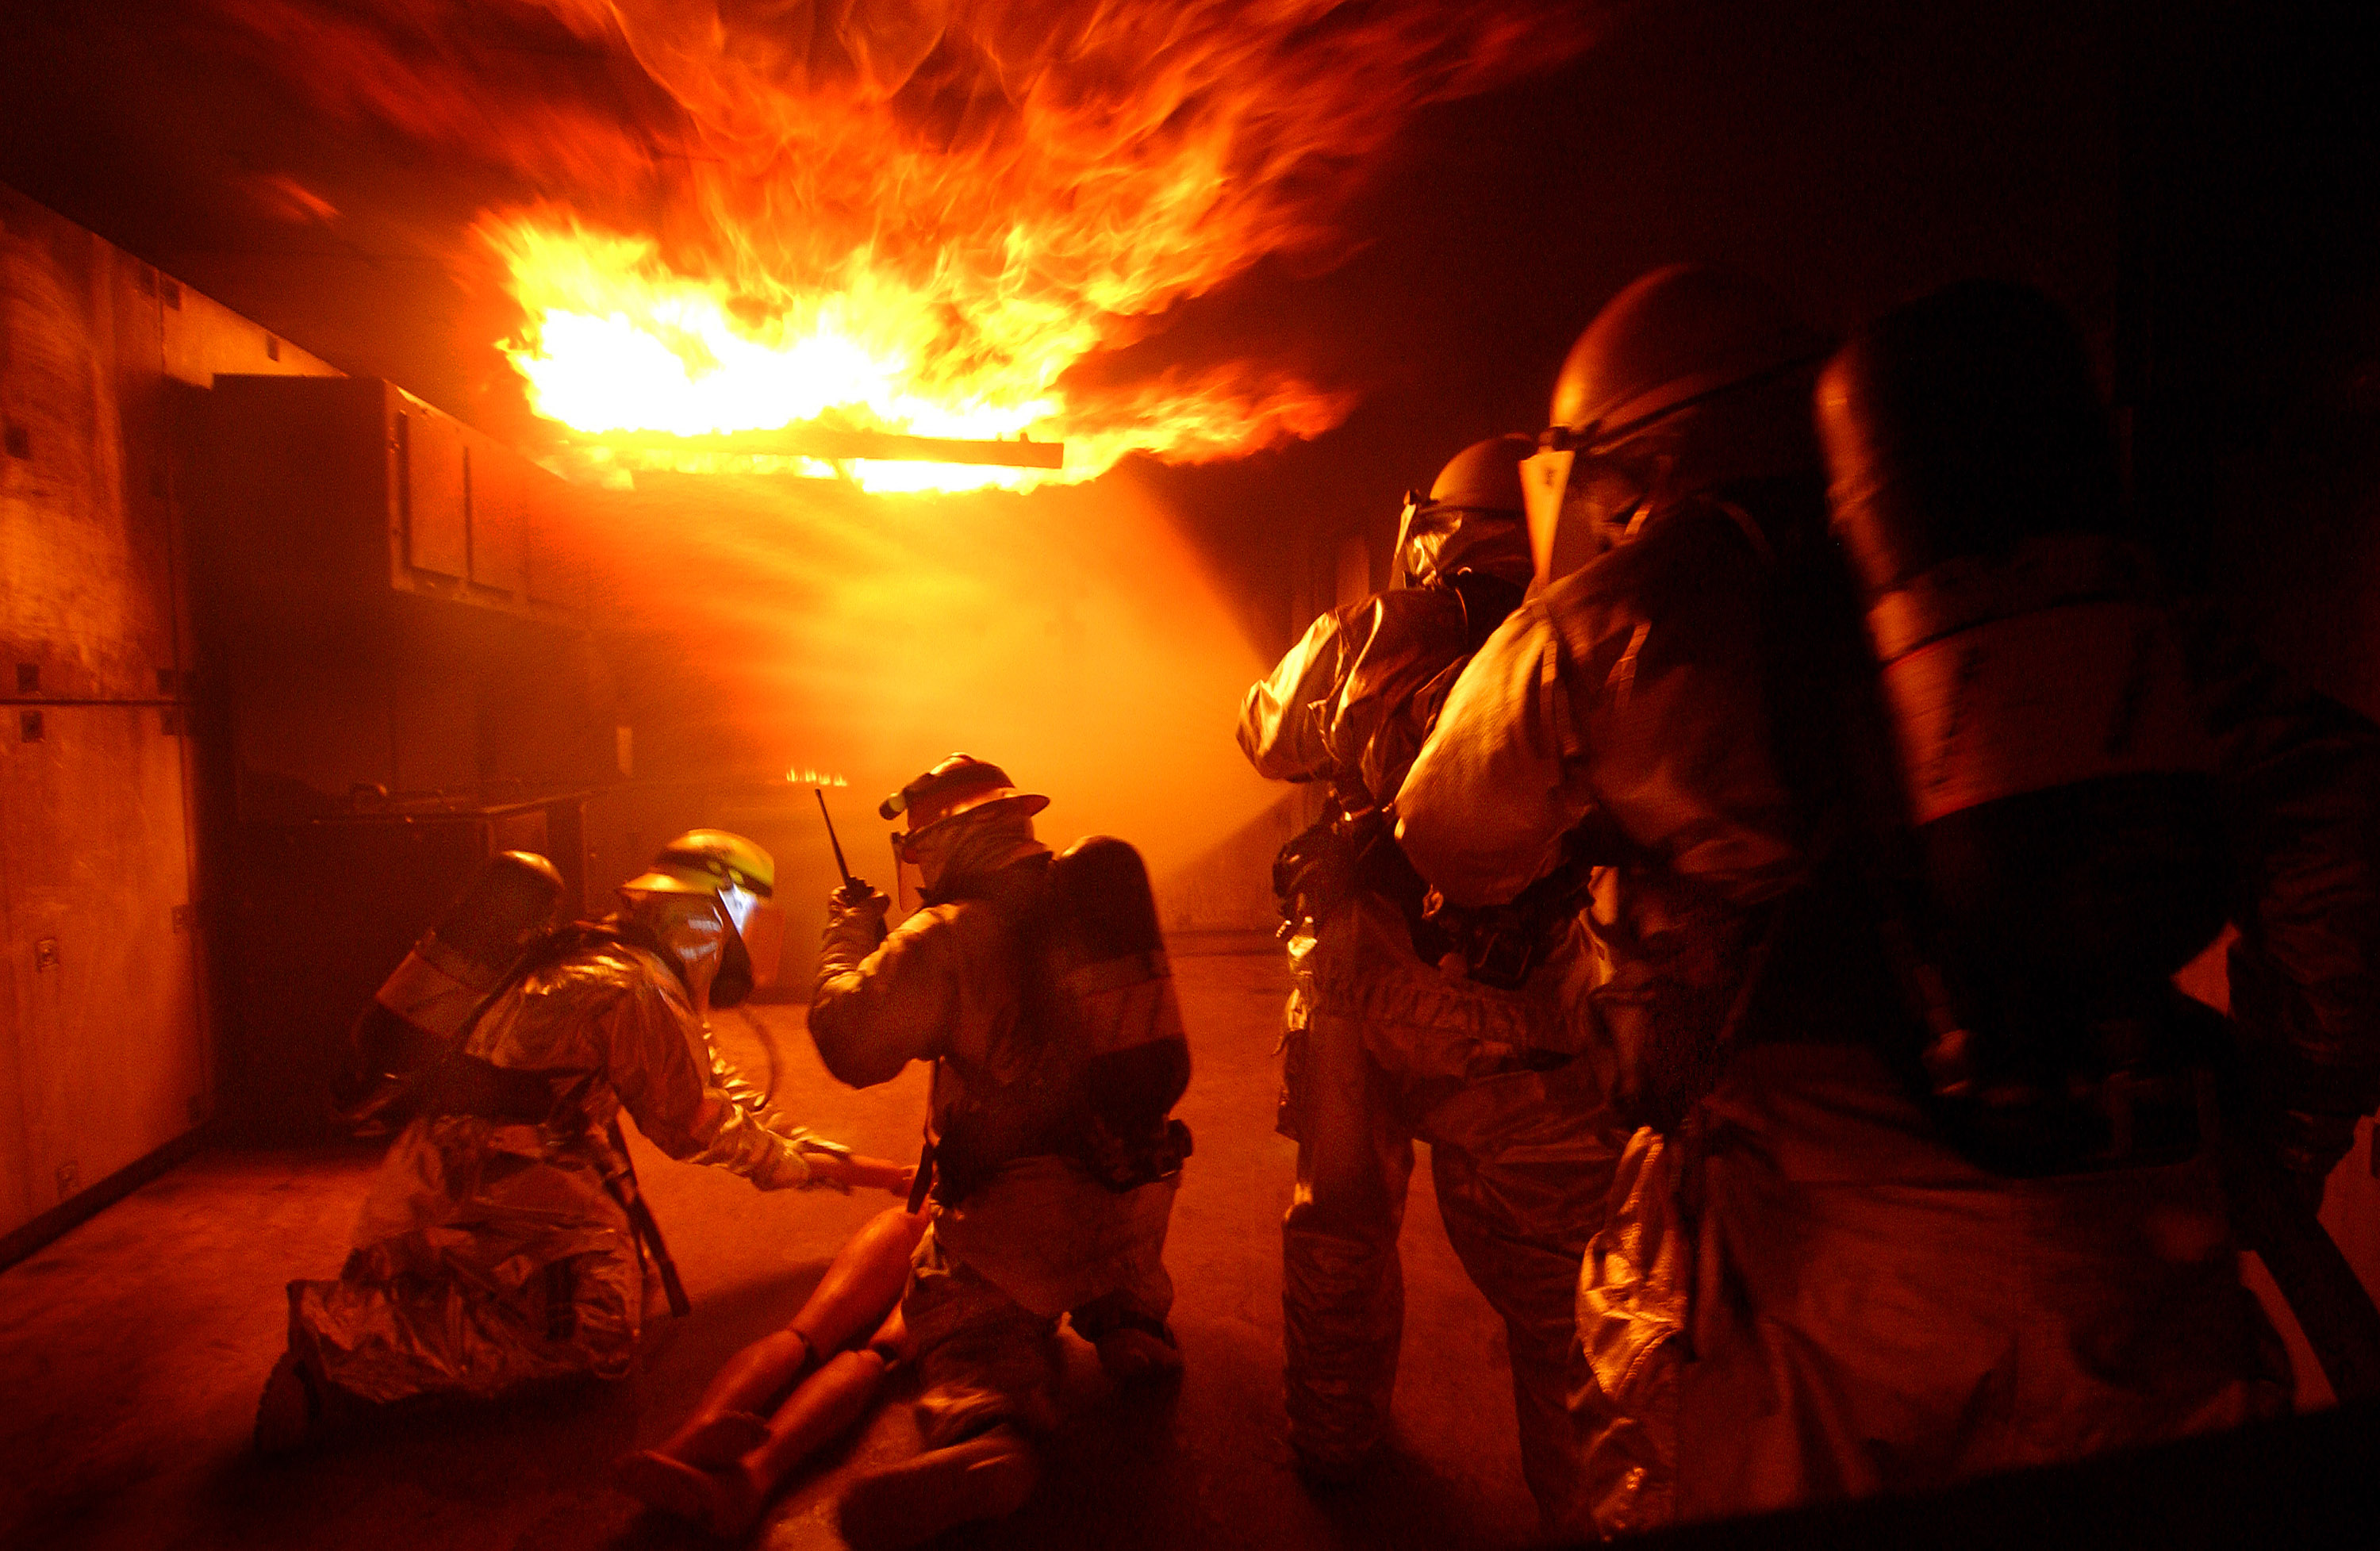 26 Firefighter HD Wallpapers